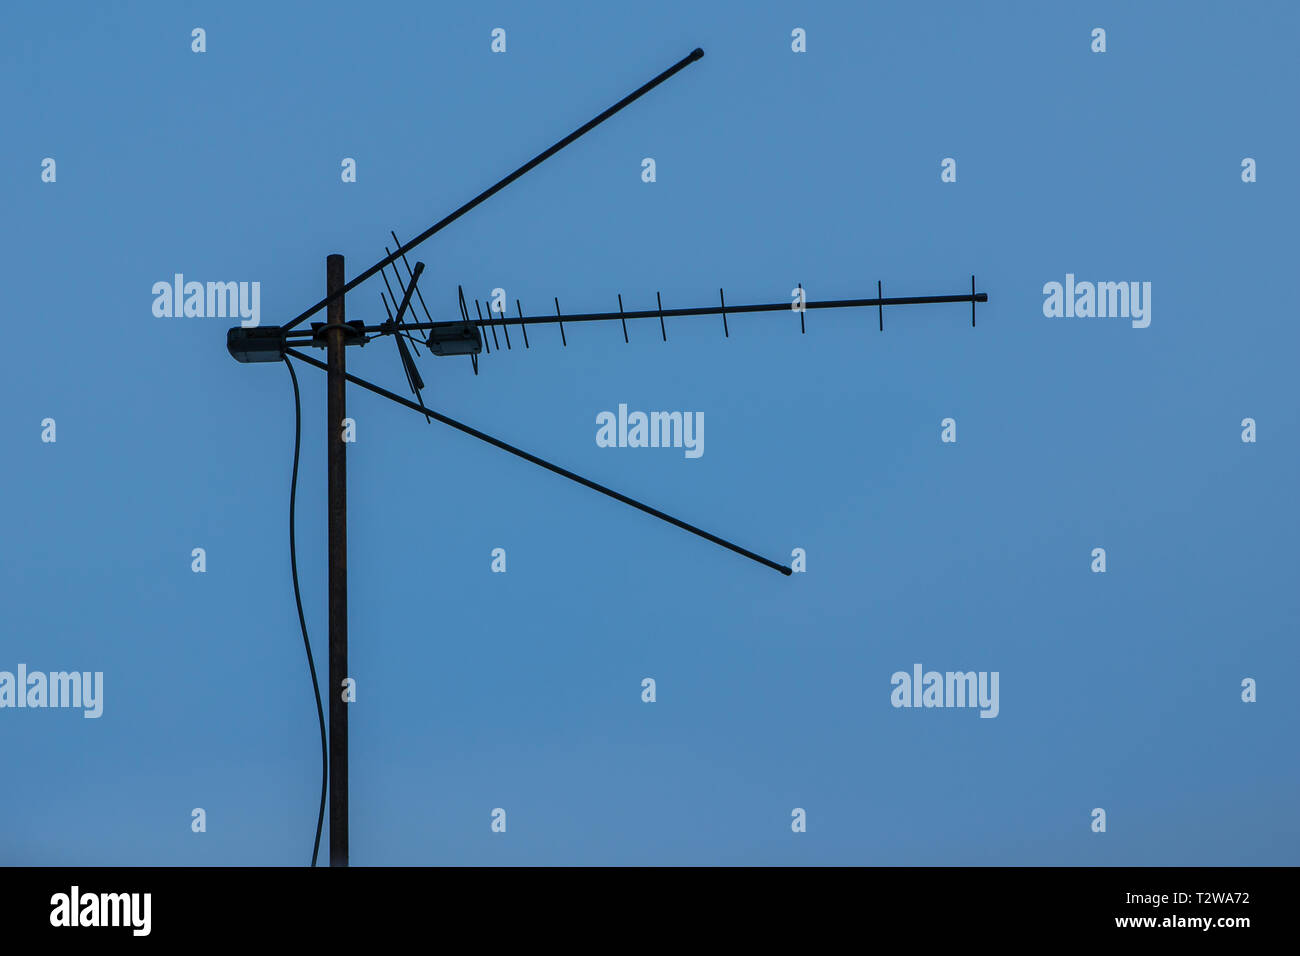 hight resolution of broadband television antenna against a blue sky analog and digital broadcasting